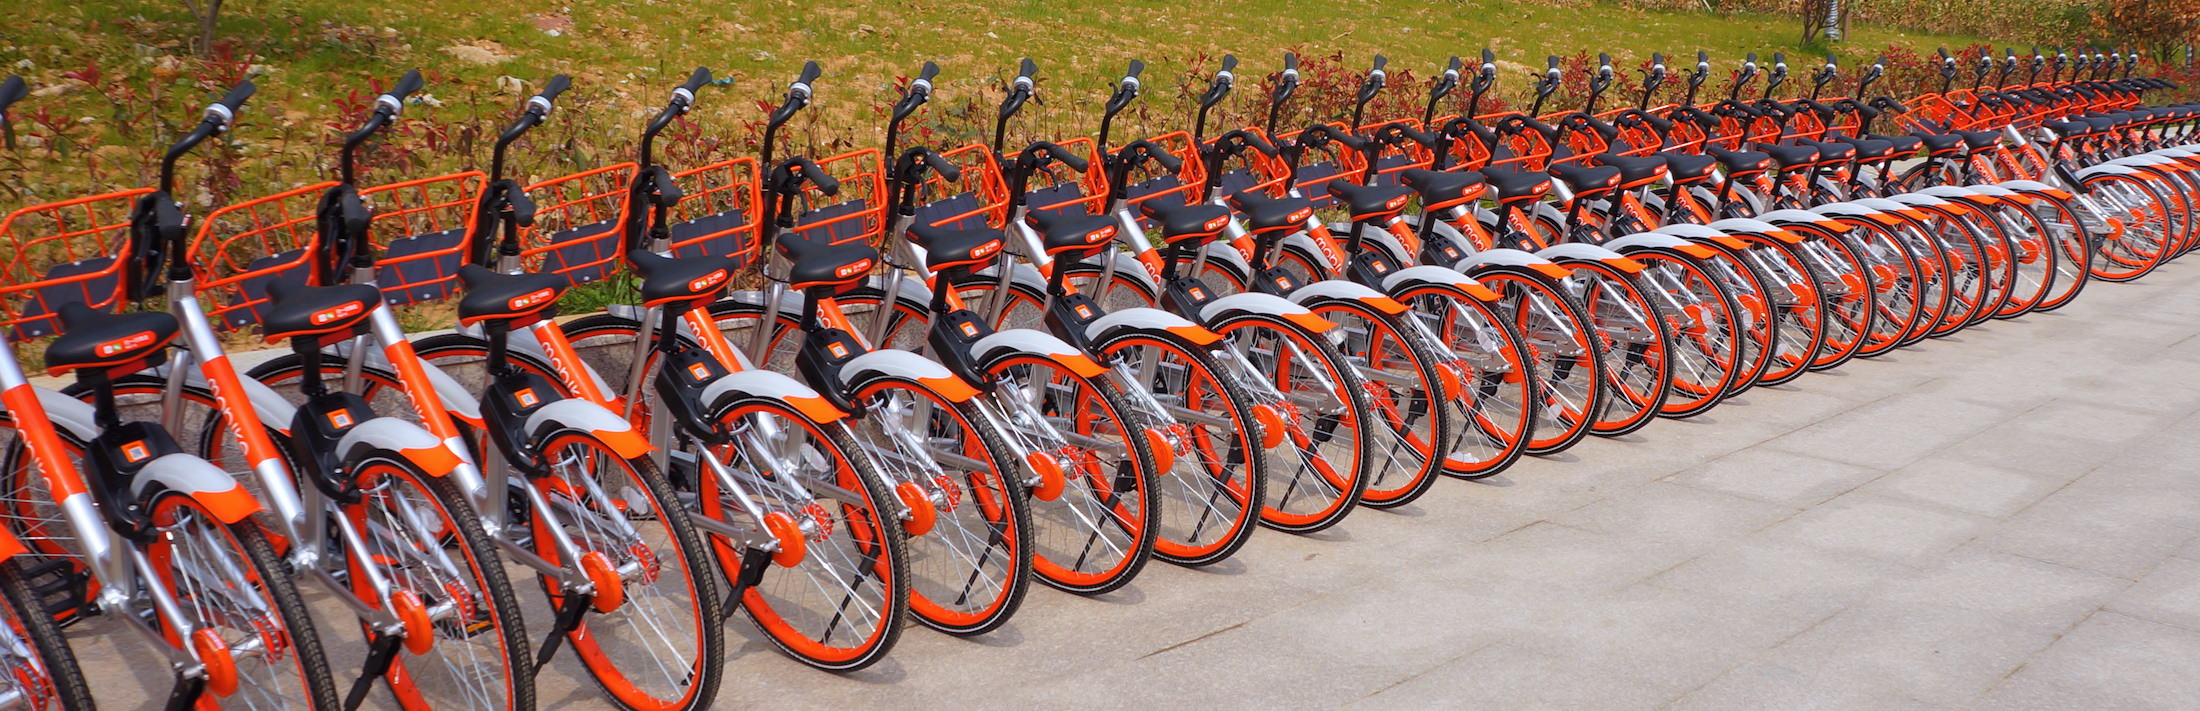 Mobikes in Xuzhuang